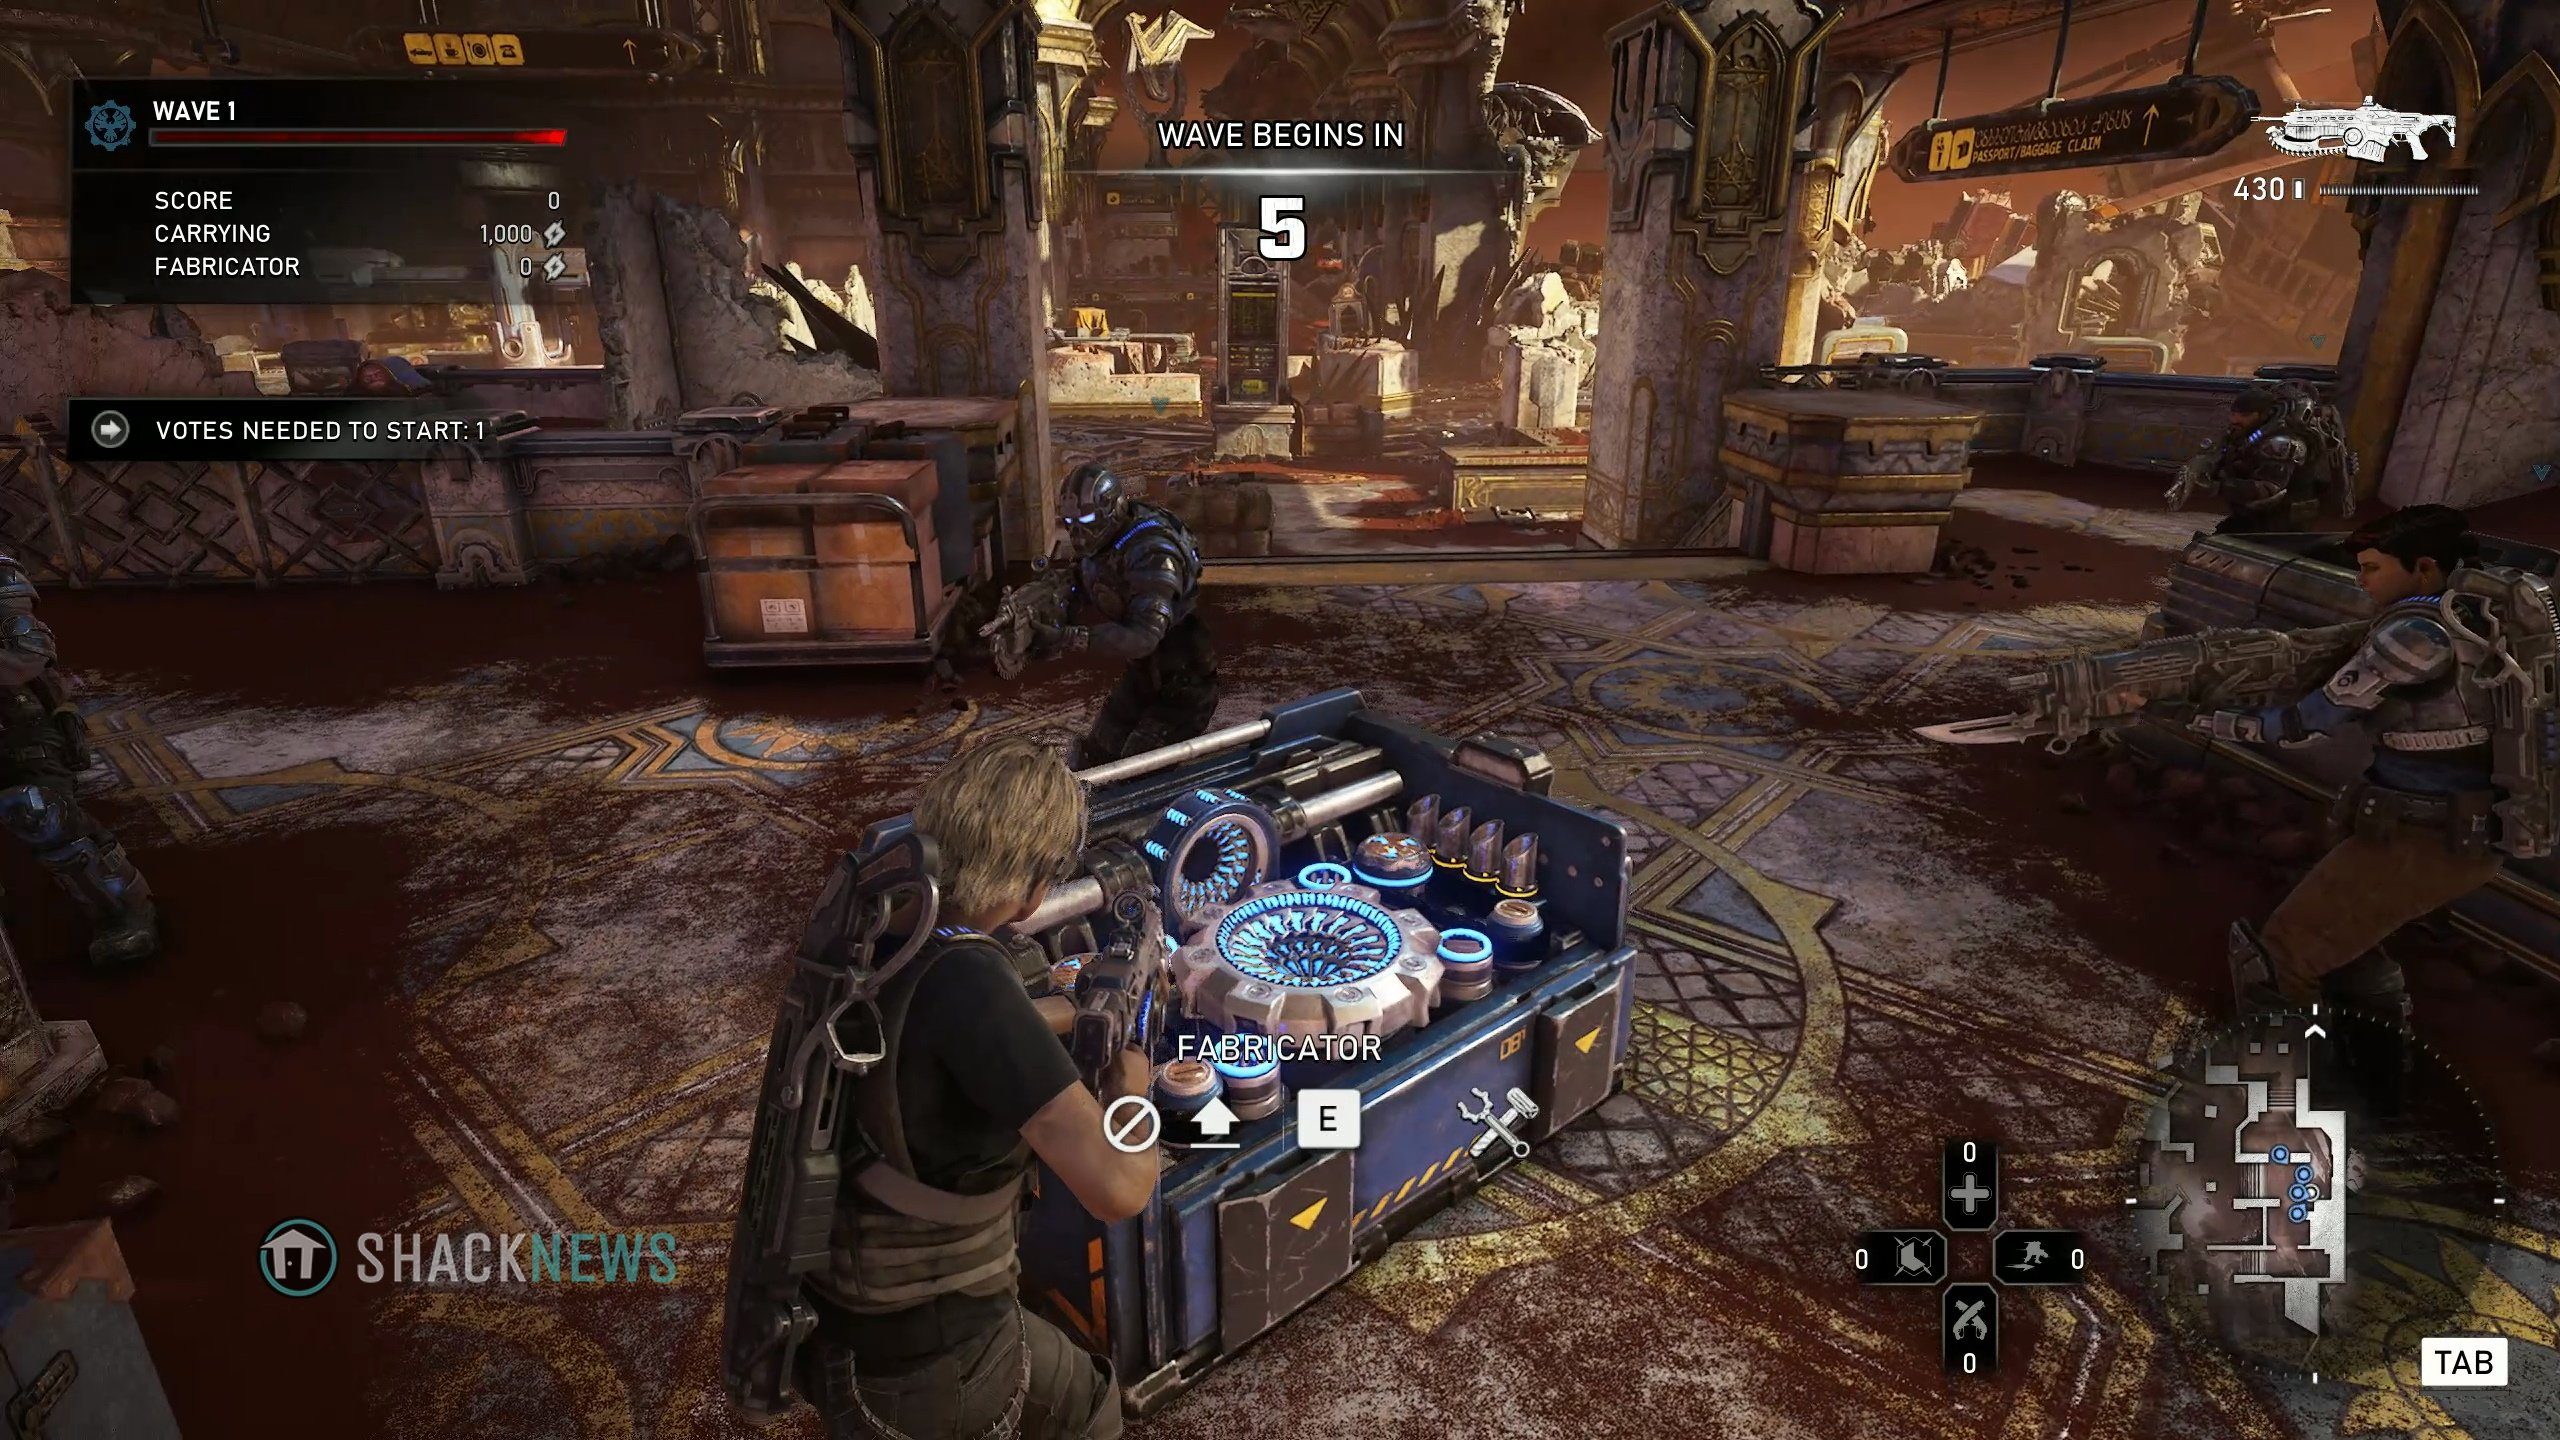 Fabricator placement in Gears 5 Horde mode is very important.